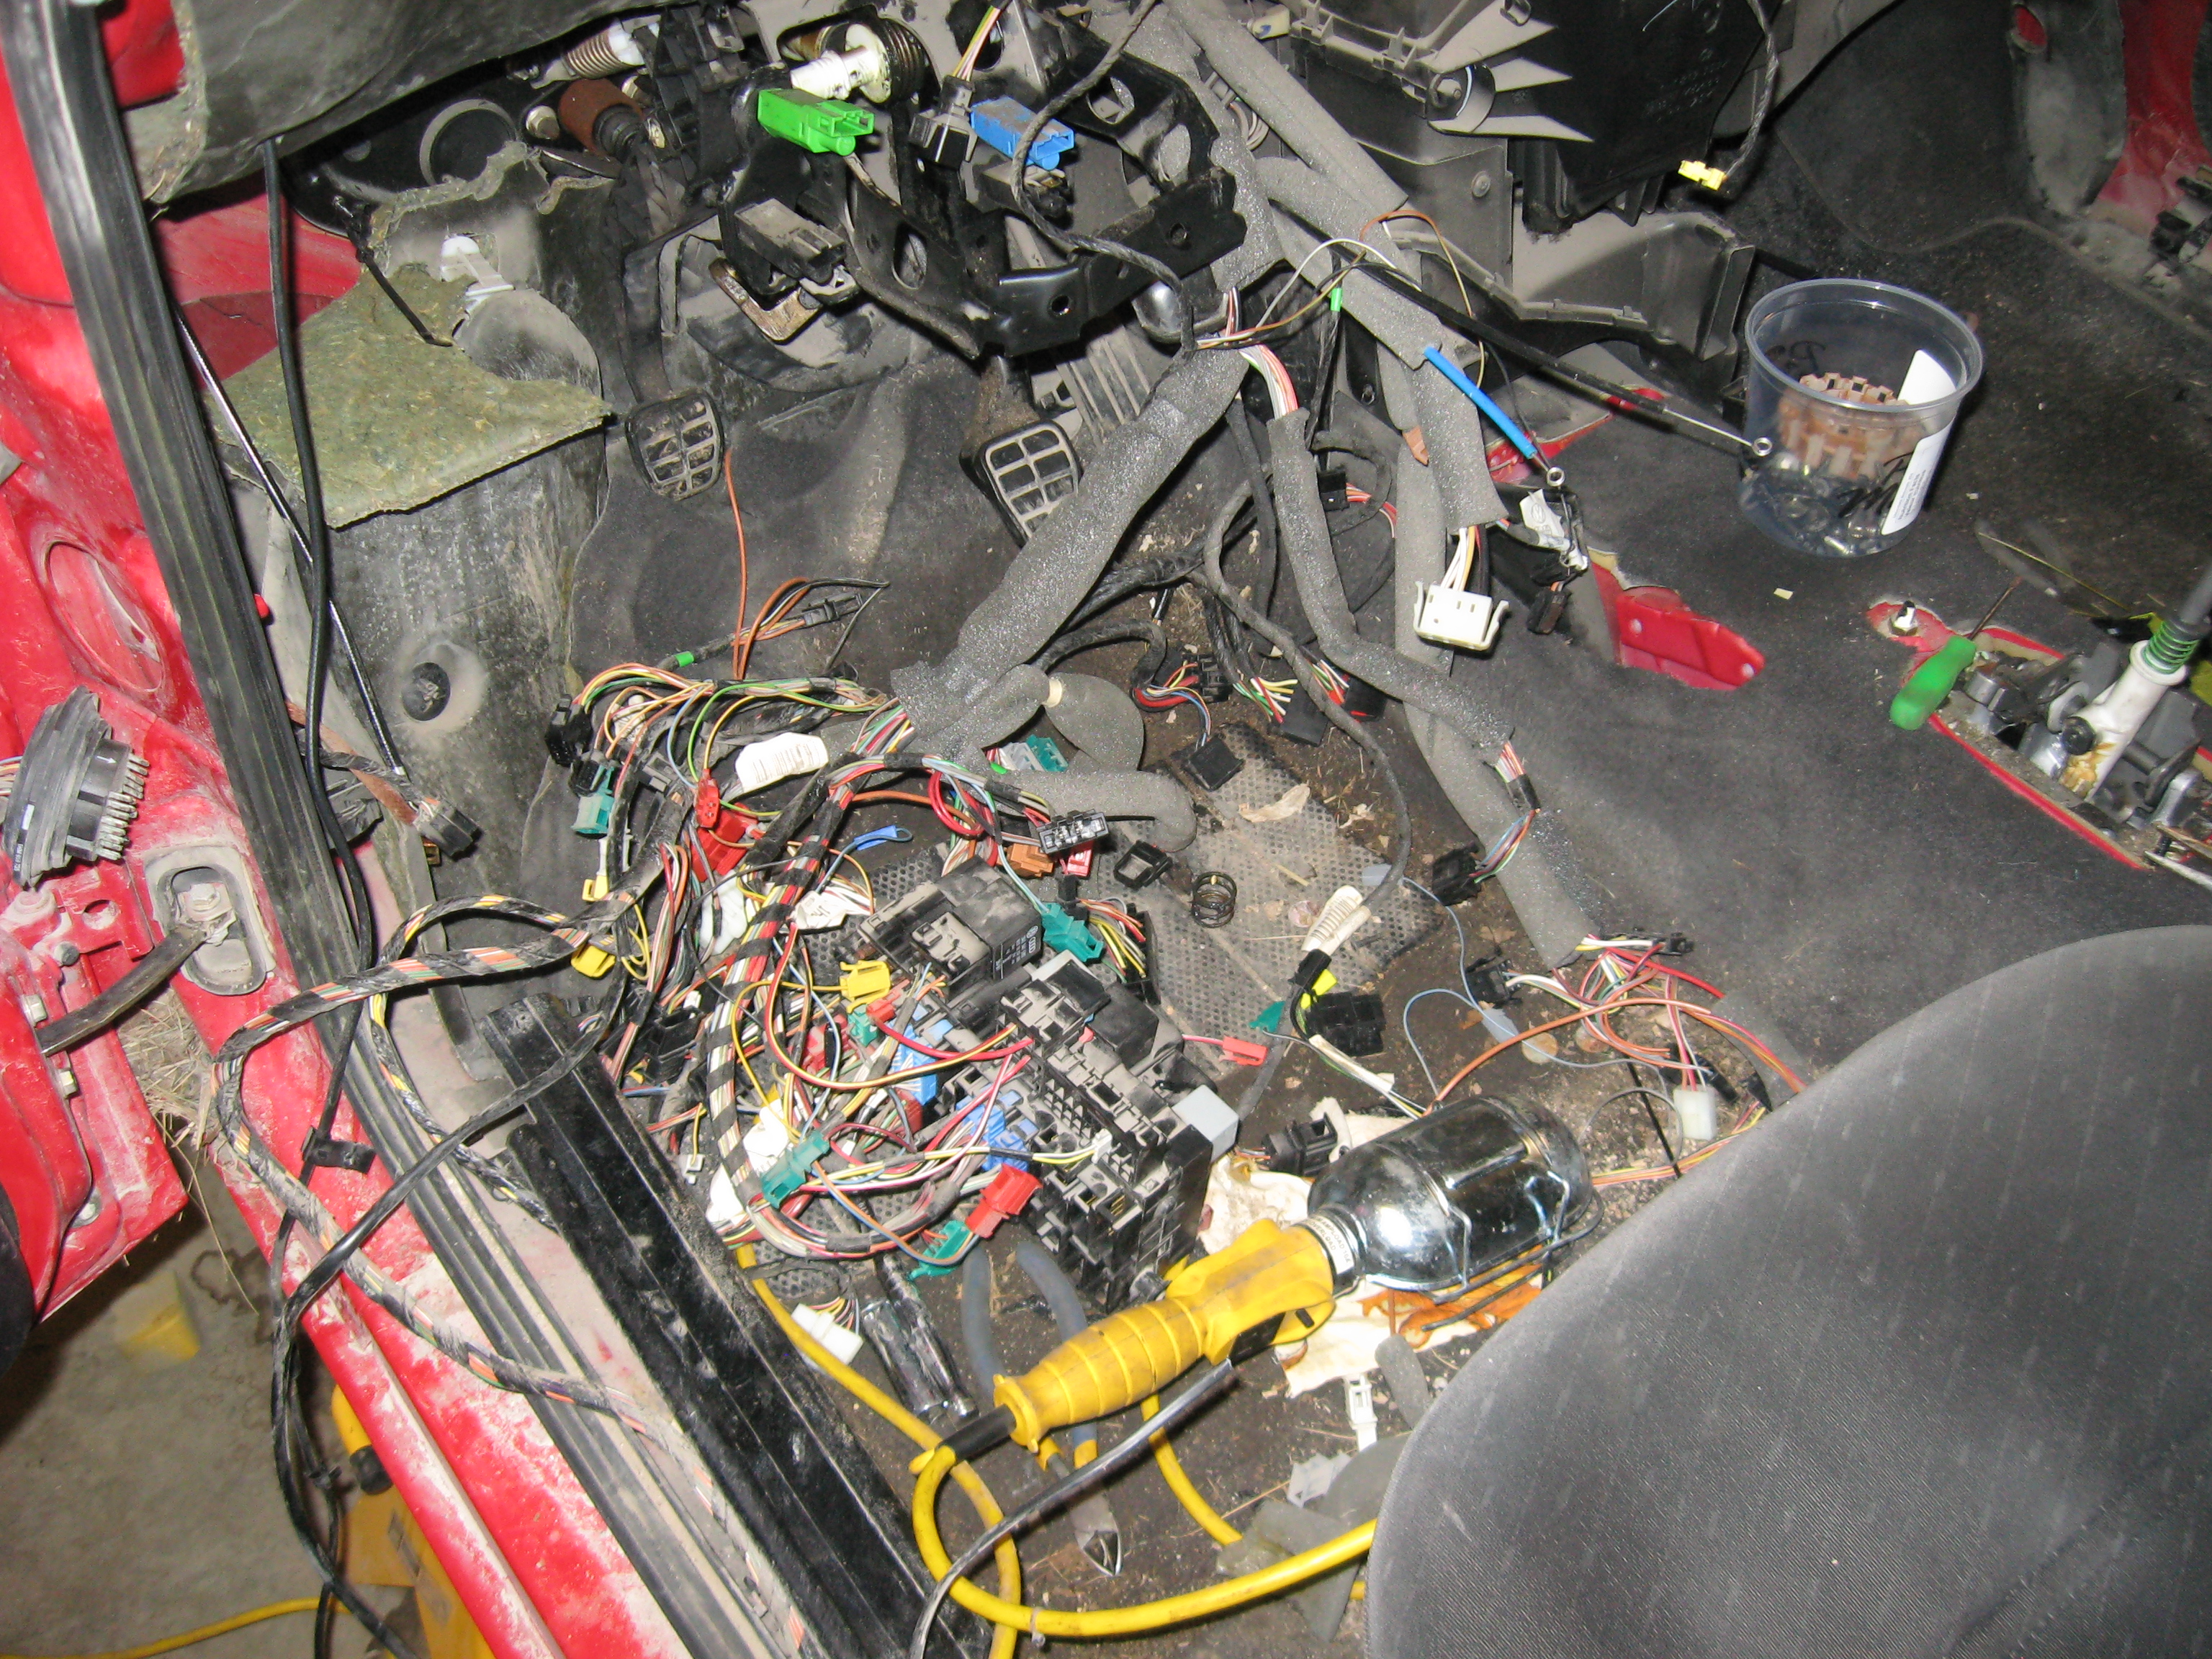 Copper Weight Loss Program Wiring Harness The Whole Vw Is A Pretty Complex Piece Of Engineering But When You Break It Down Wire By Its Not That Bad I Wanted To Keep Everything